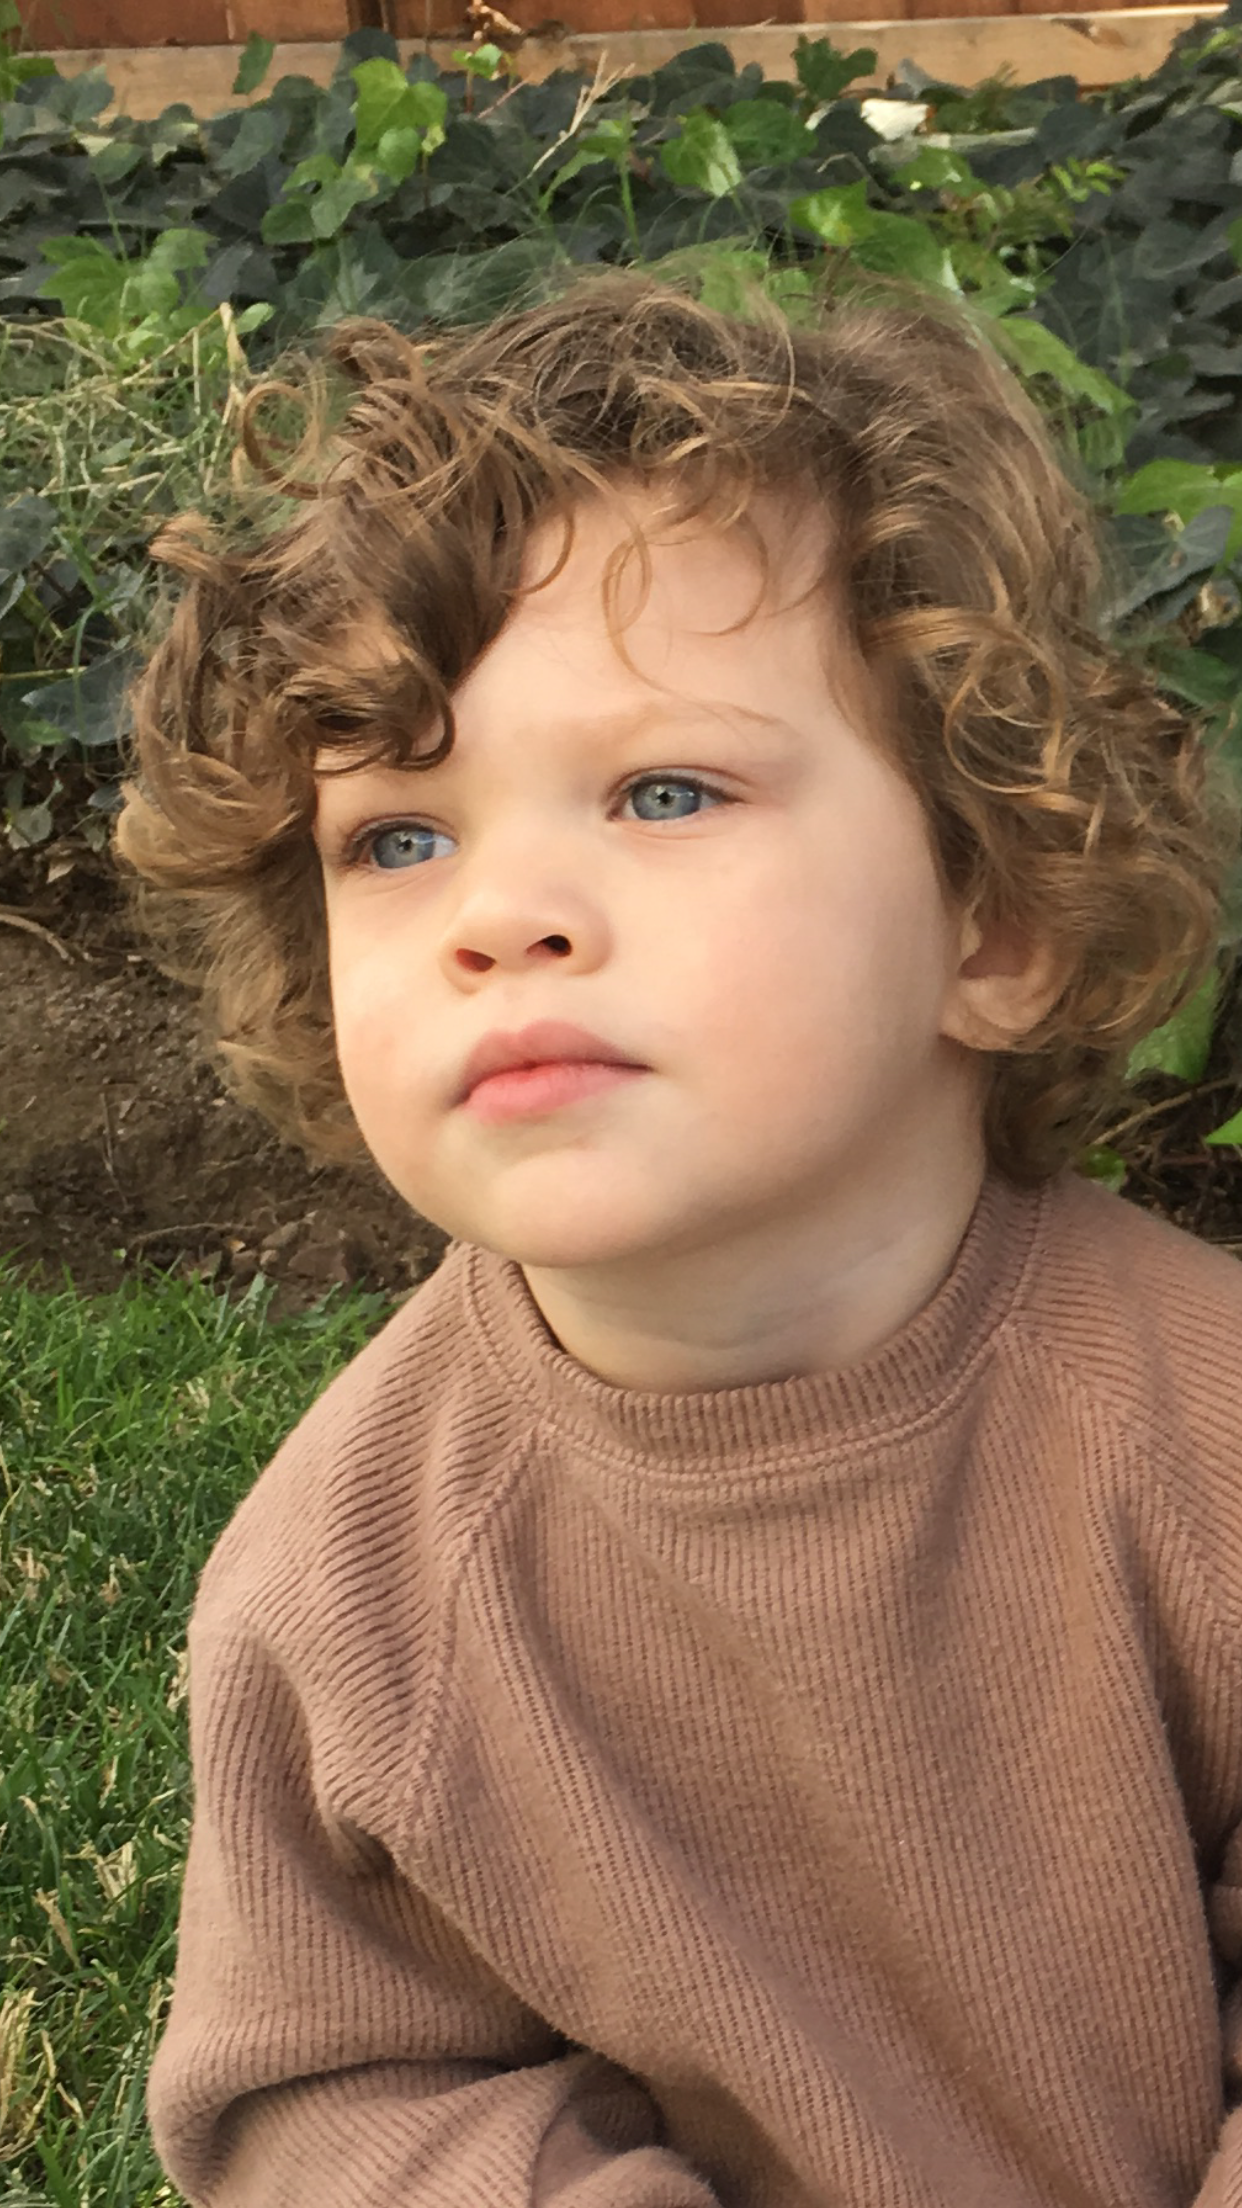 Toddler Curly Hair Curly Hair Baby Toddler Boy Haircuts Curly Hair Baby Boy